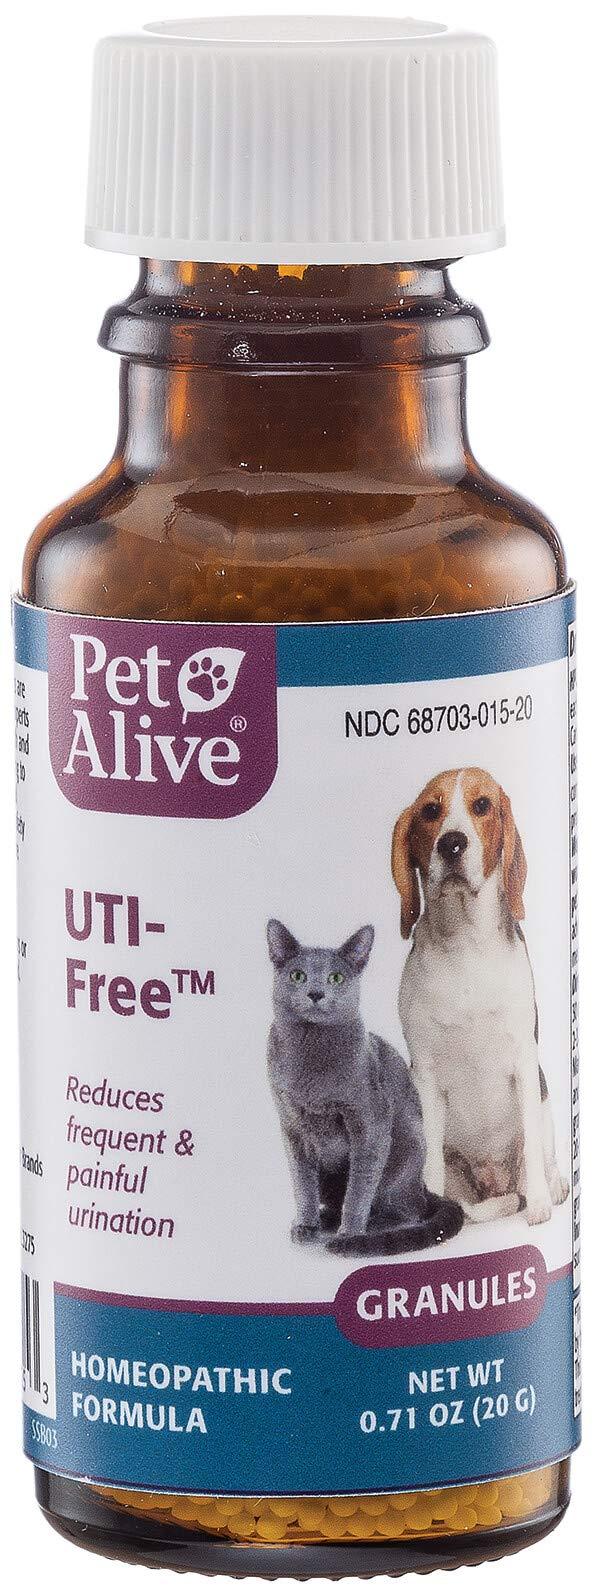 PetAlive UTI-Free for Pet Bladder and Urinary Tract Health (20g) by PetAlive